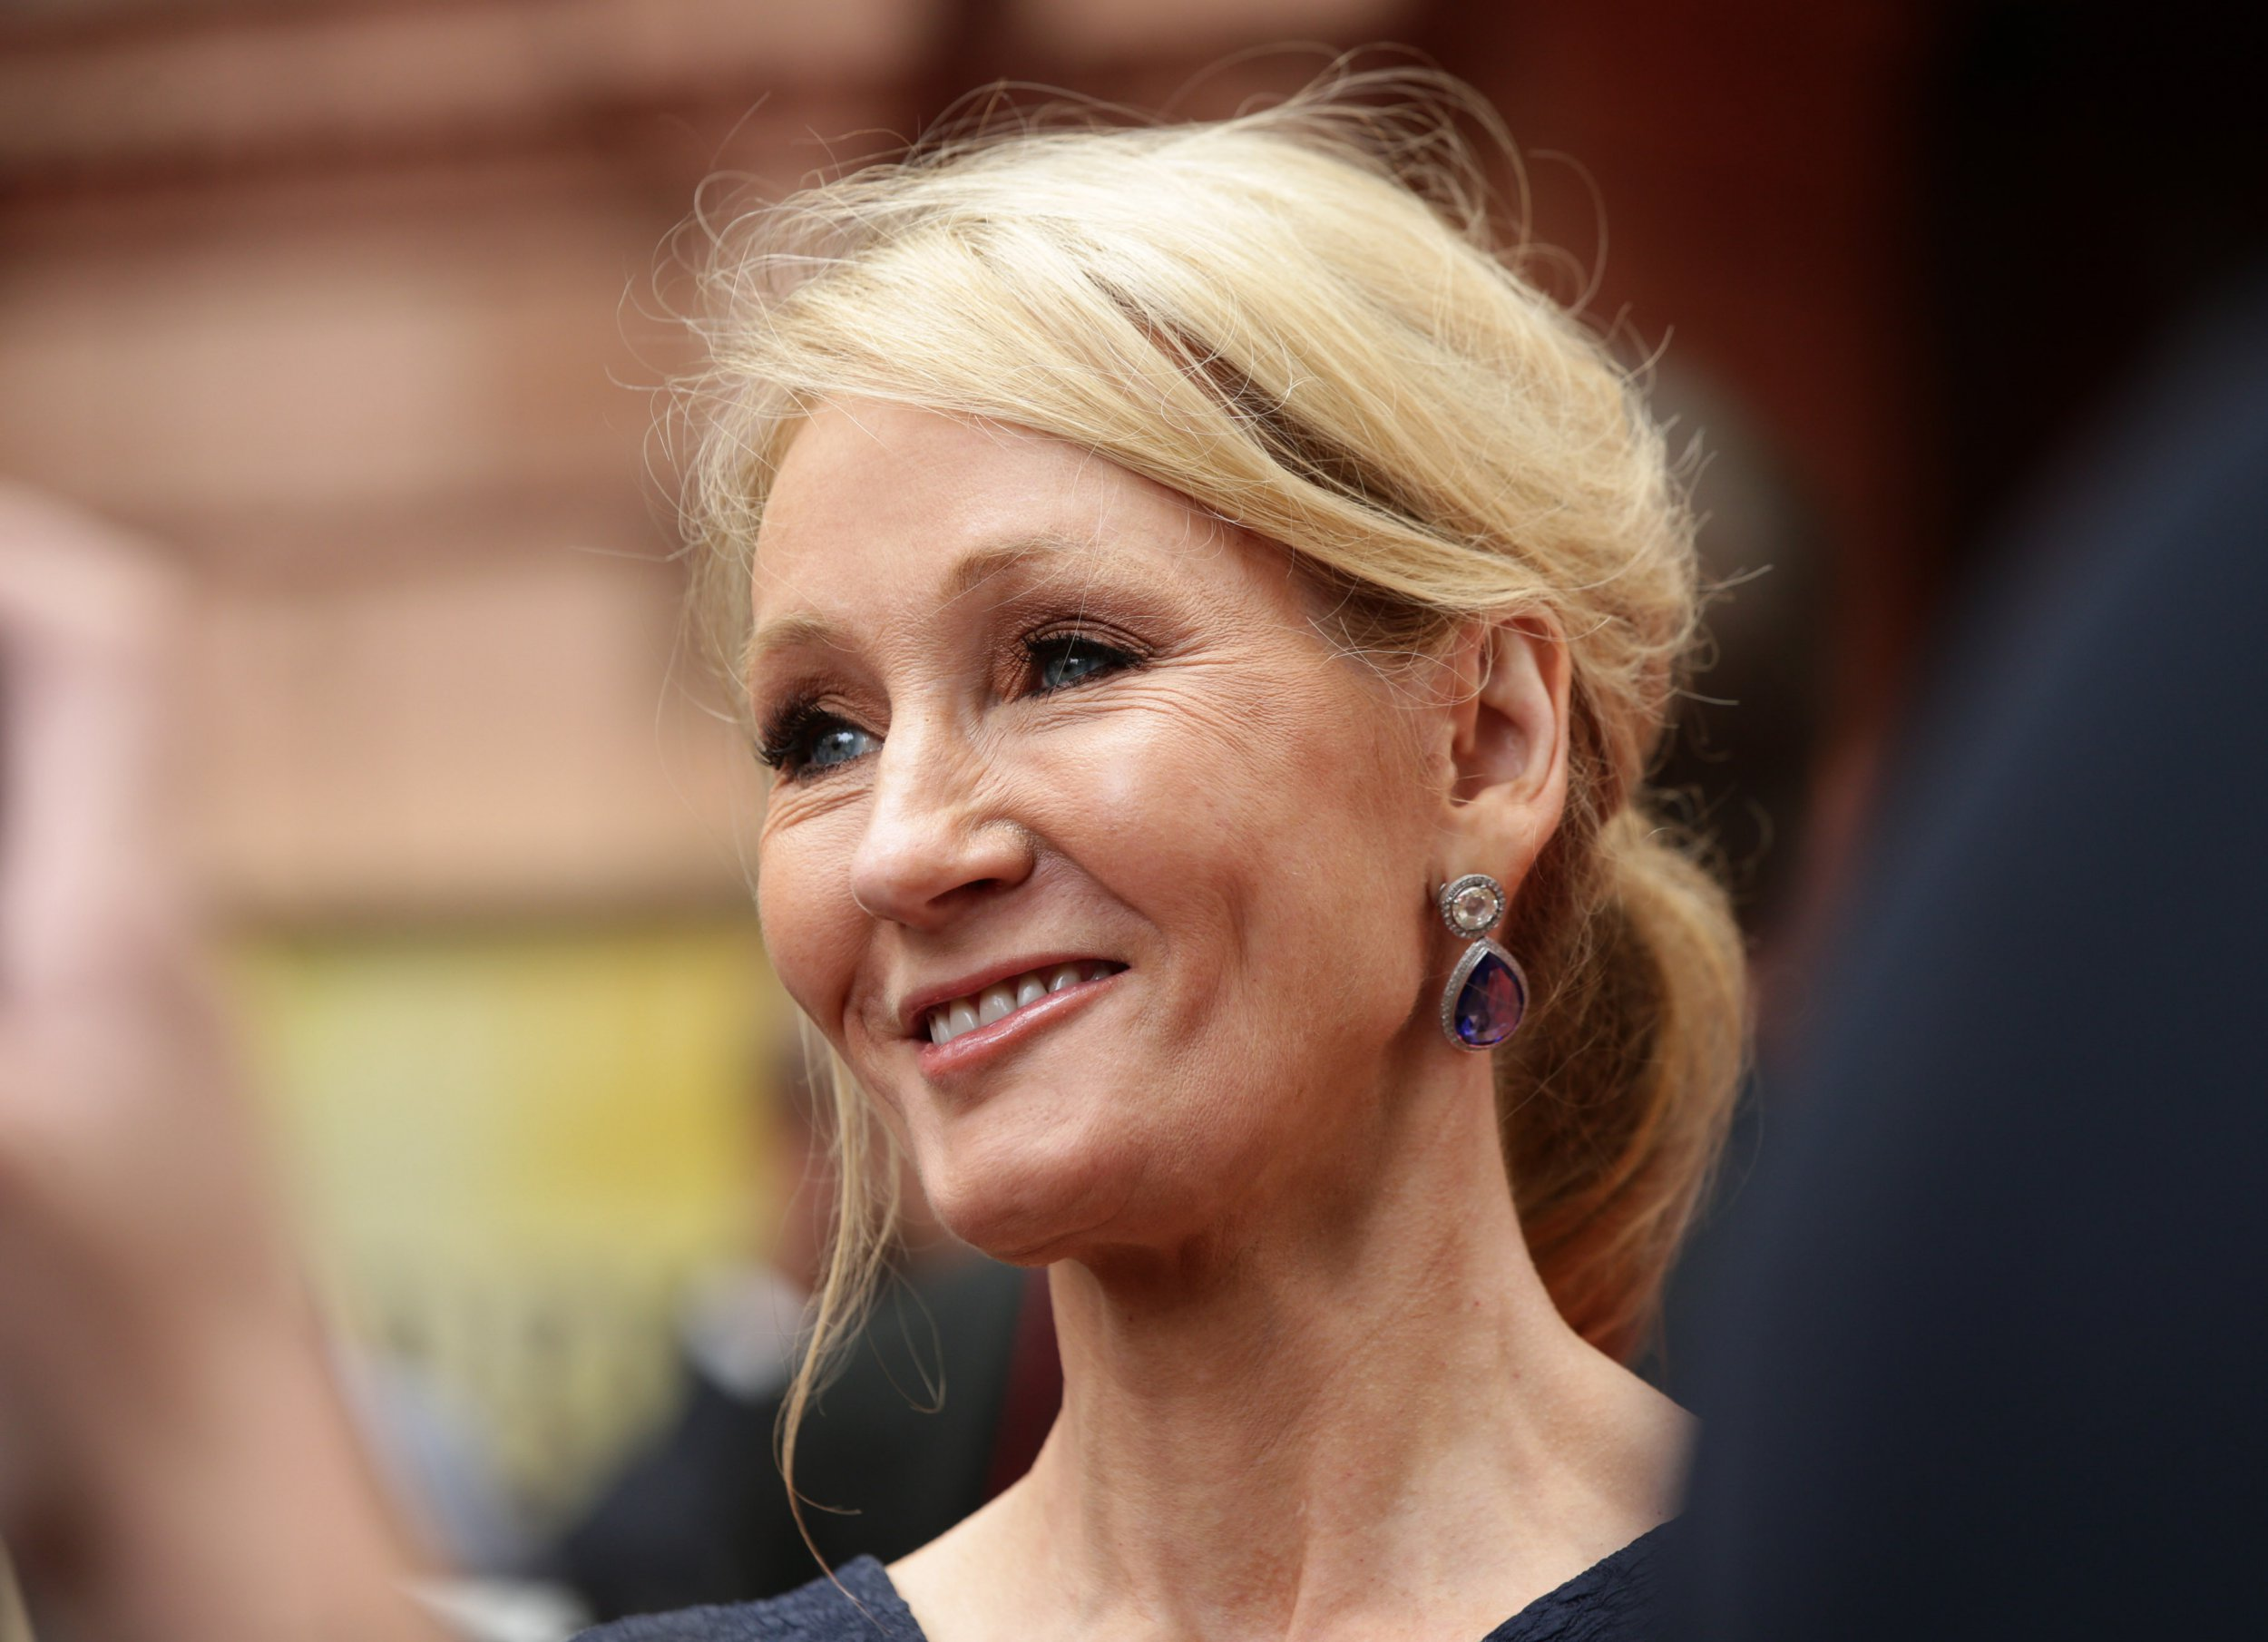 JK Rowling makes £136 per minute so enjoy squeezing everything out of your last pay